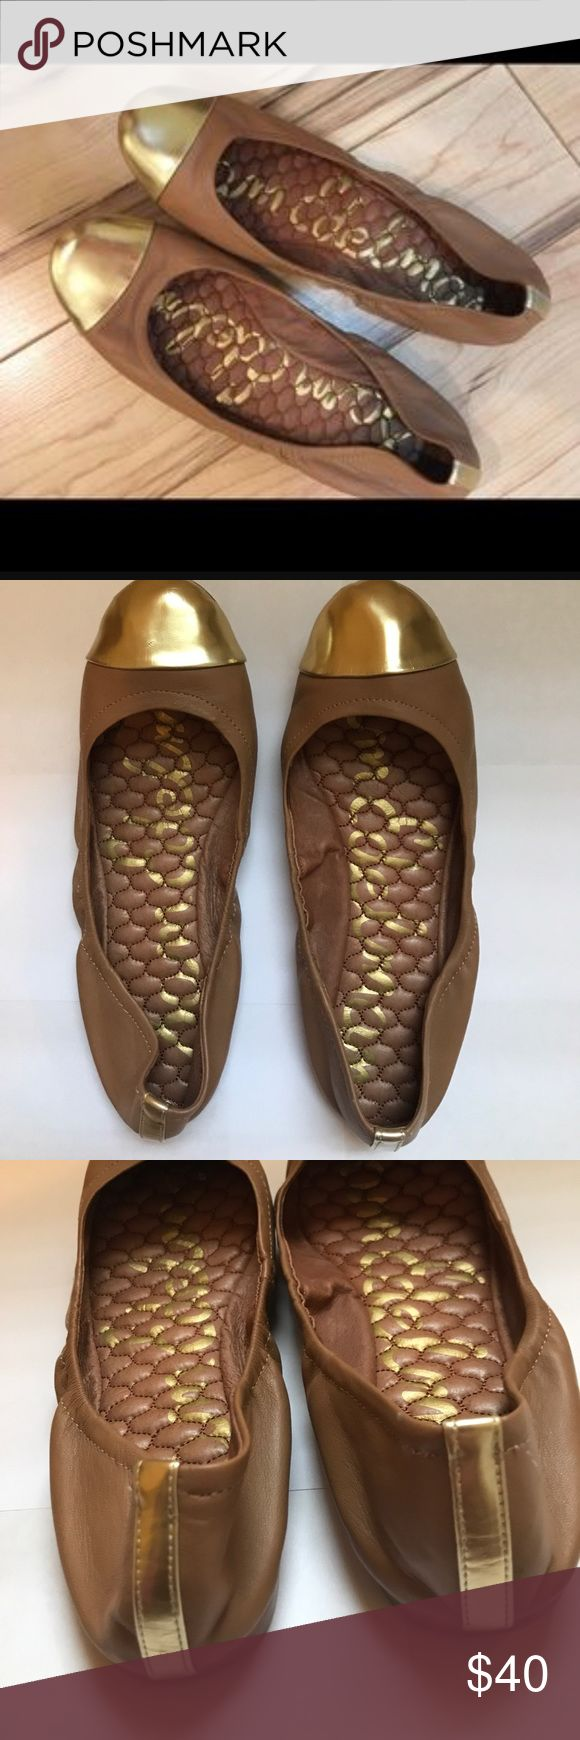 Sam Edelman Ballet Flats SZ 7 brown and gold Pre loved Sam Edelman ballet flats in women's size 7. These are like new except with a few scuffs on one shoe(see pictures). Sam Edelman Shoes Flats & Loafers